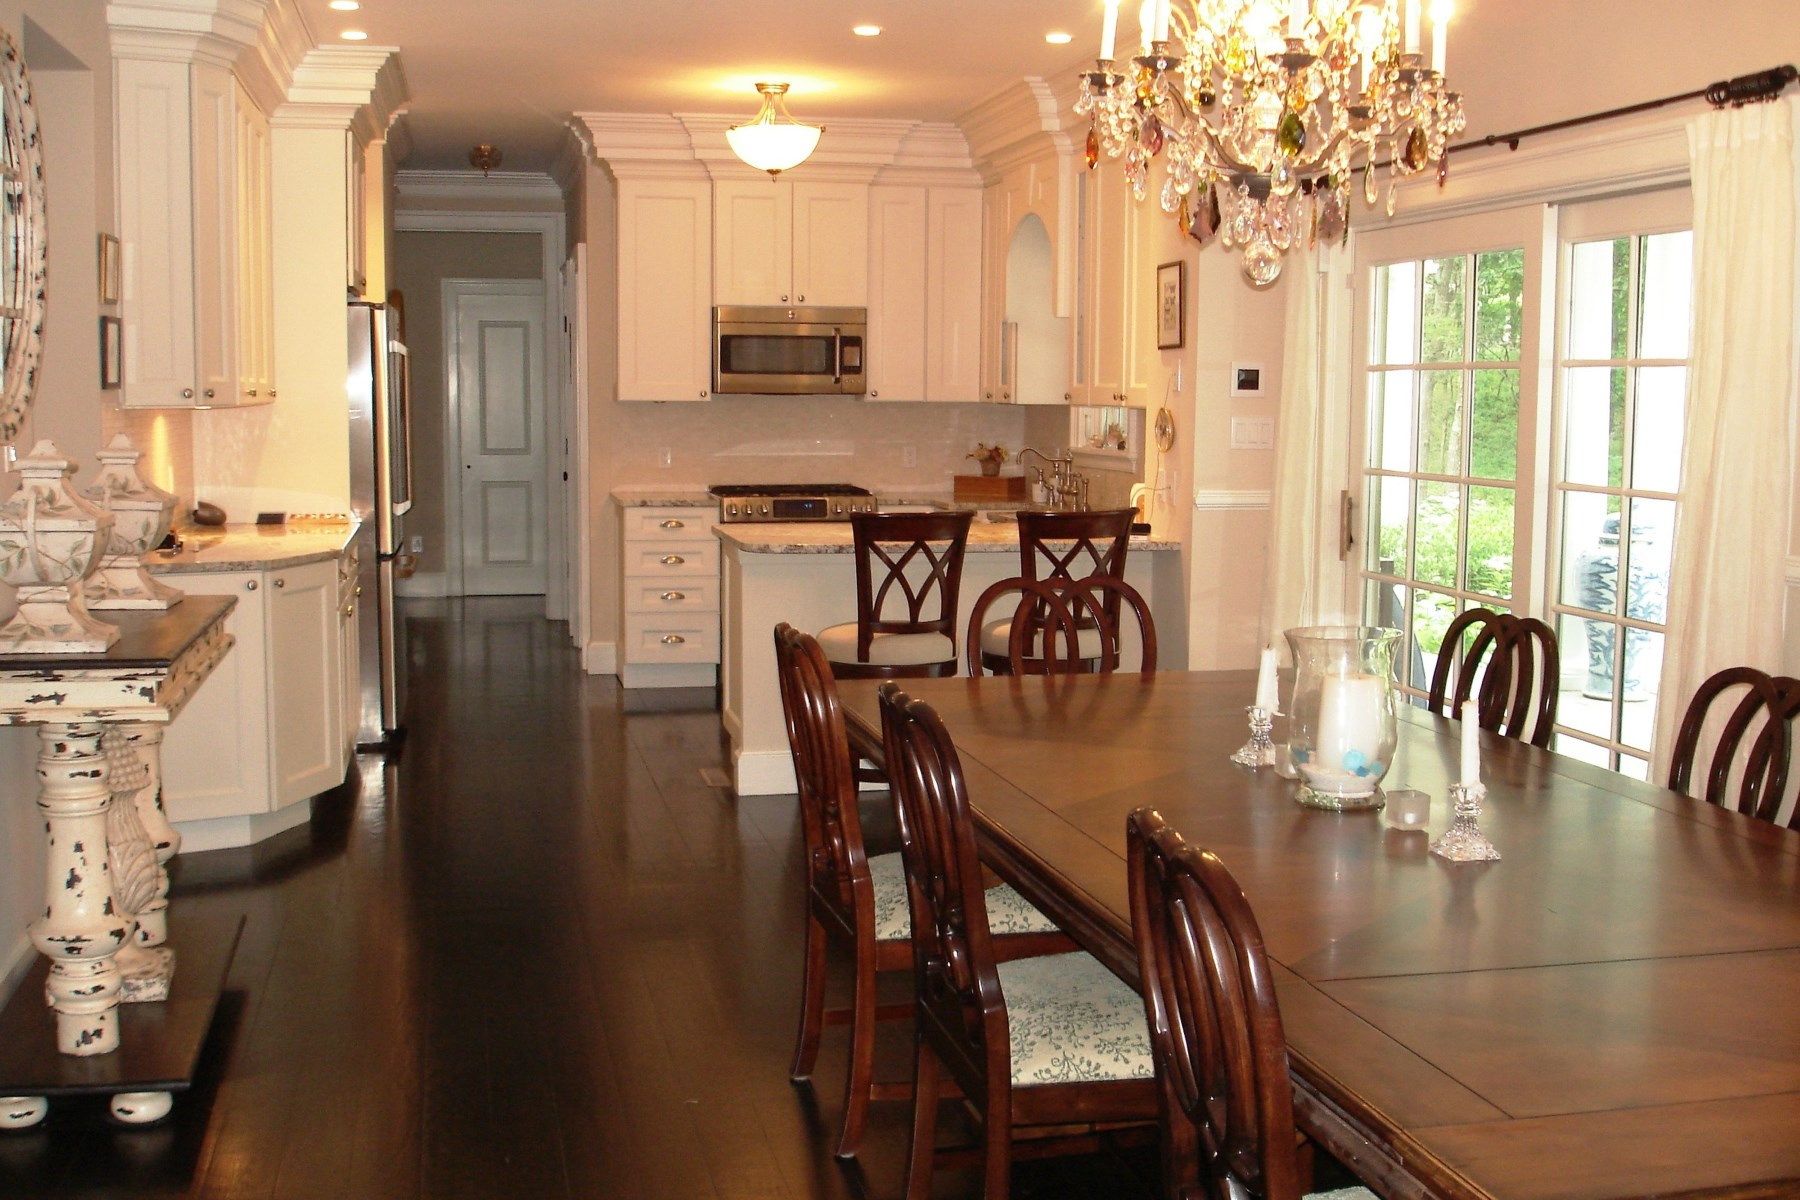 Property Of Exquisit, 5 BR Home With Pool and Tennis